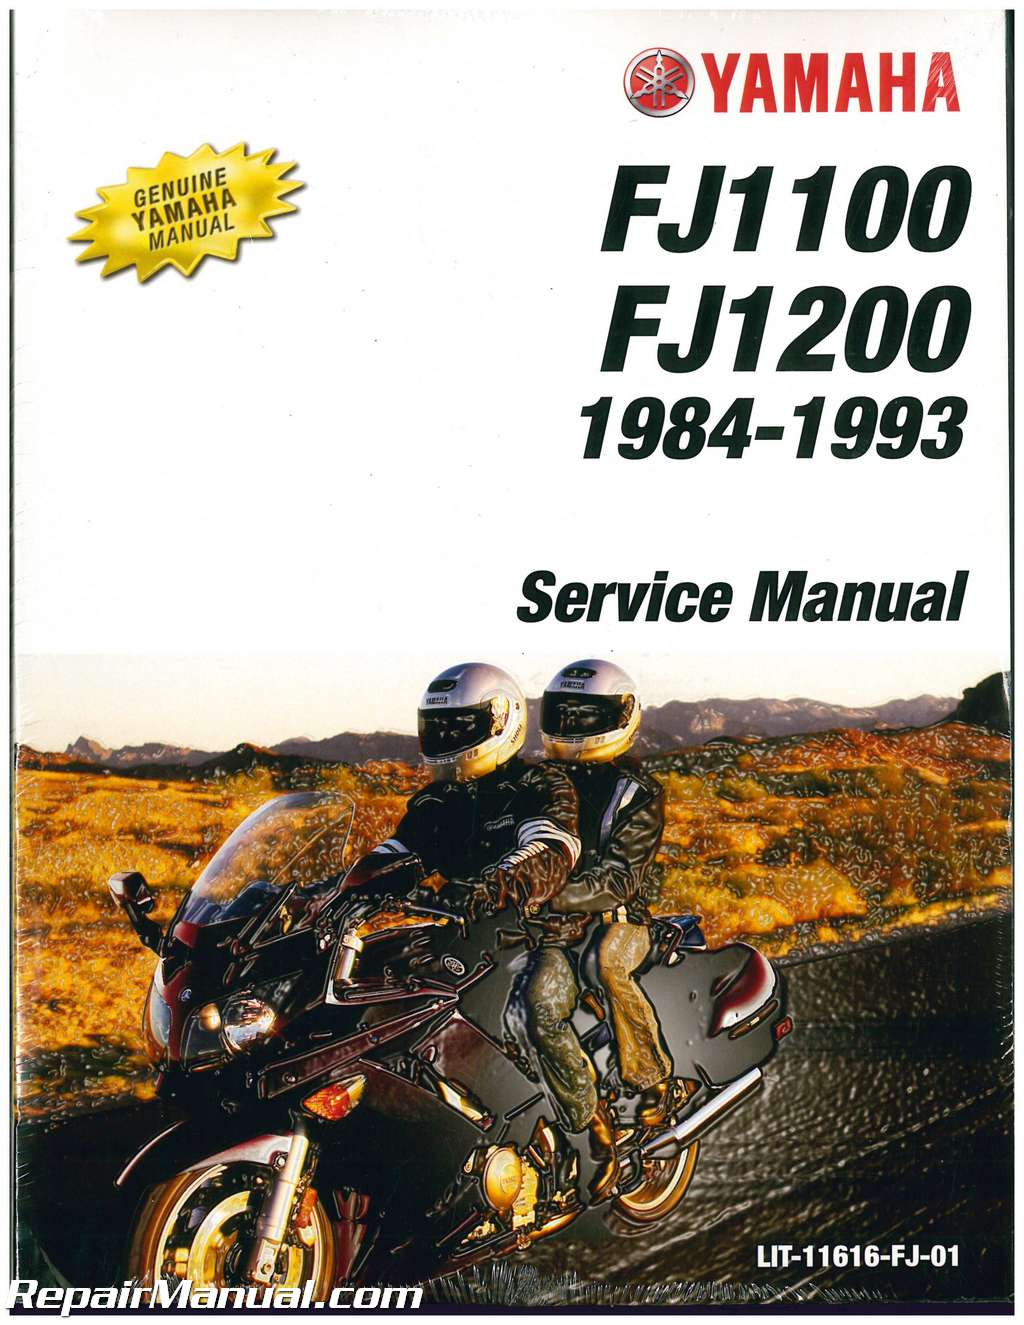 1984 1993 yamaha fj1100 fj1200 motorcycle service manual. Black Bedroom Furniture Sets. Home Design Ideas